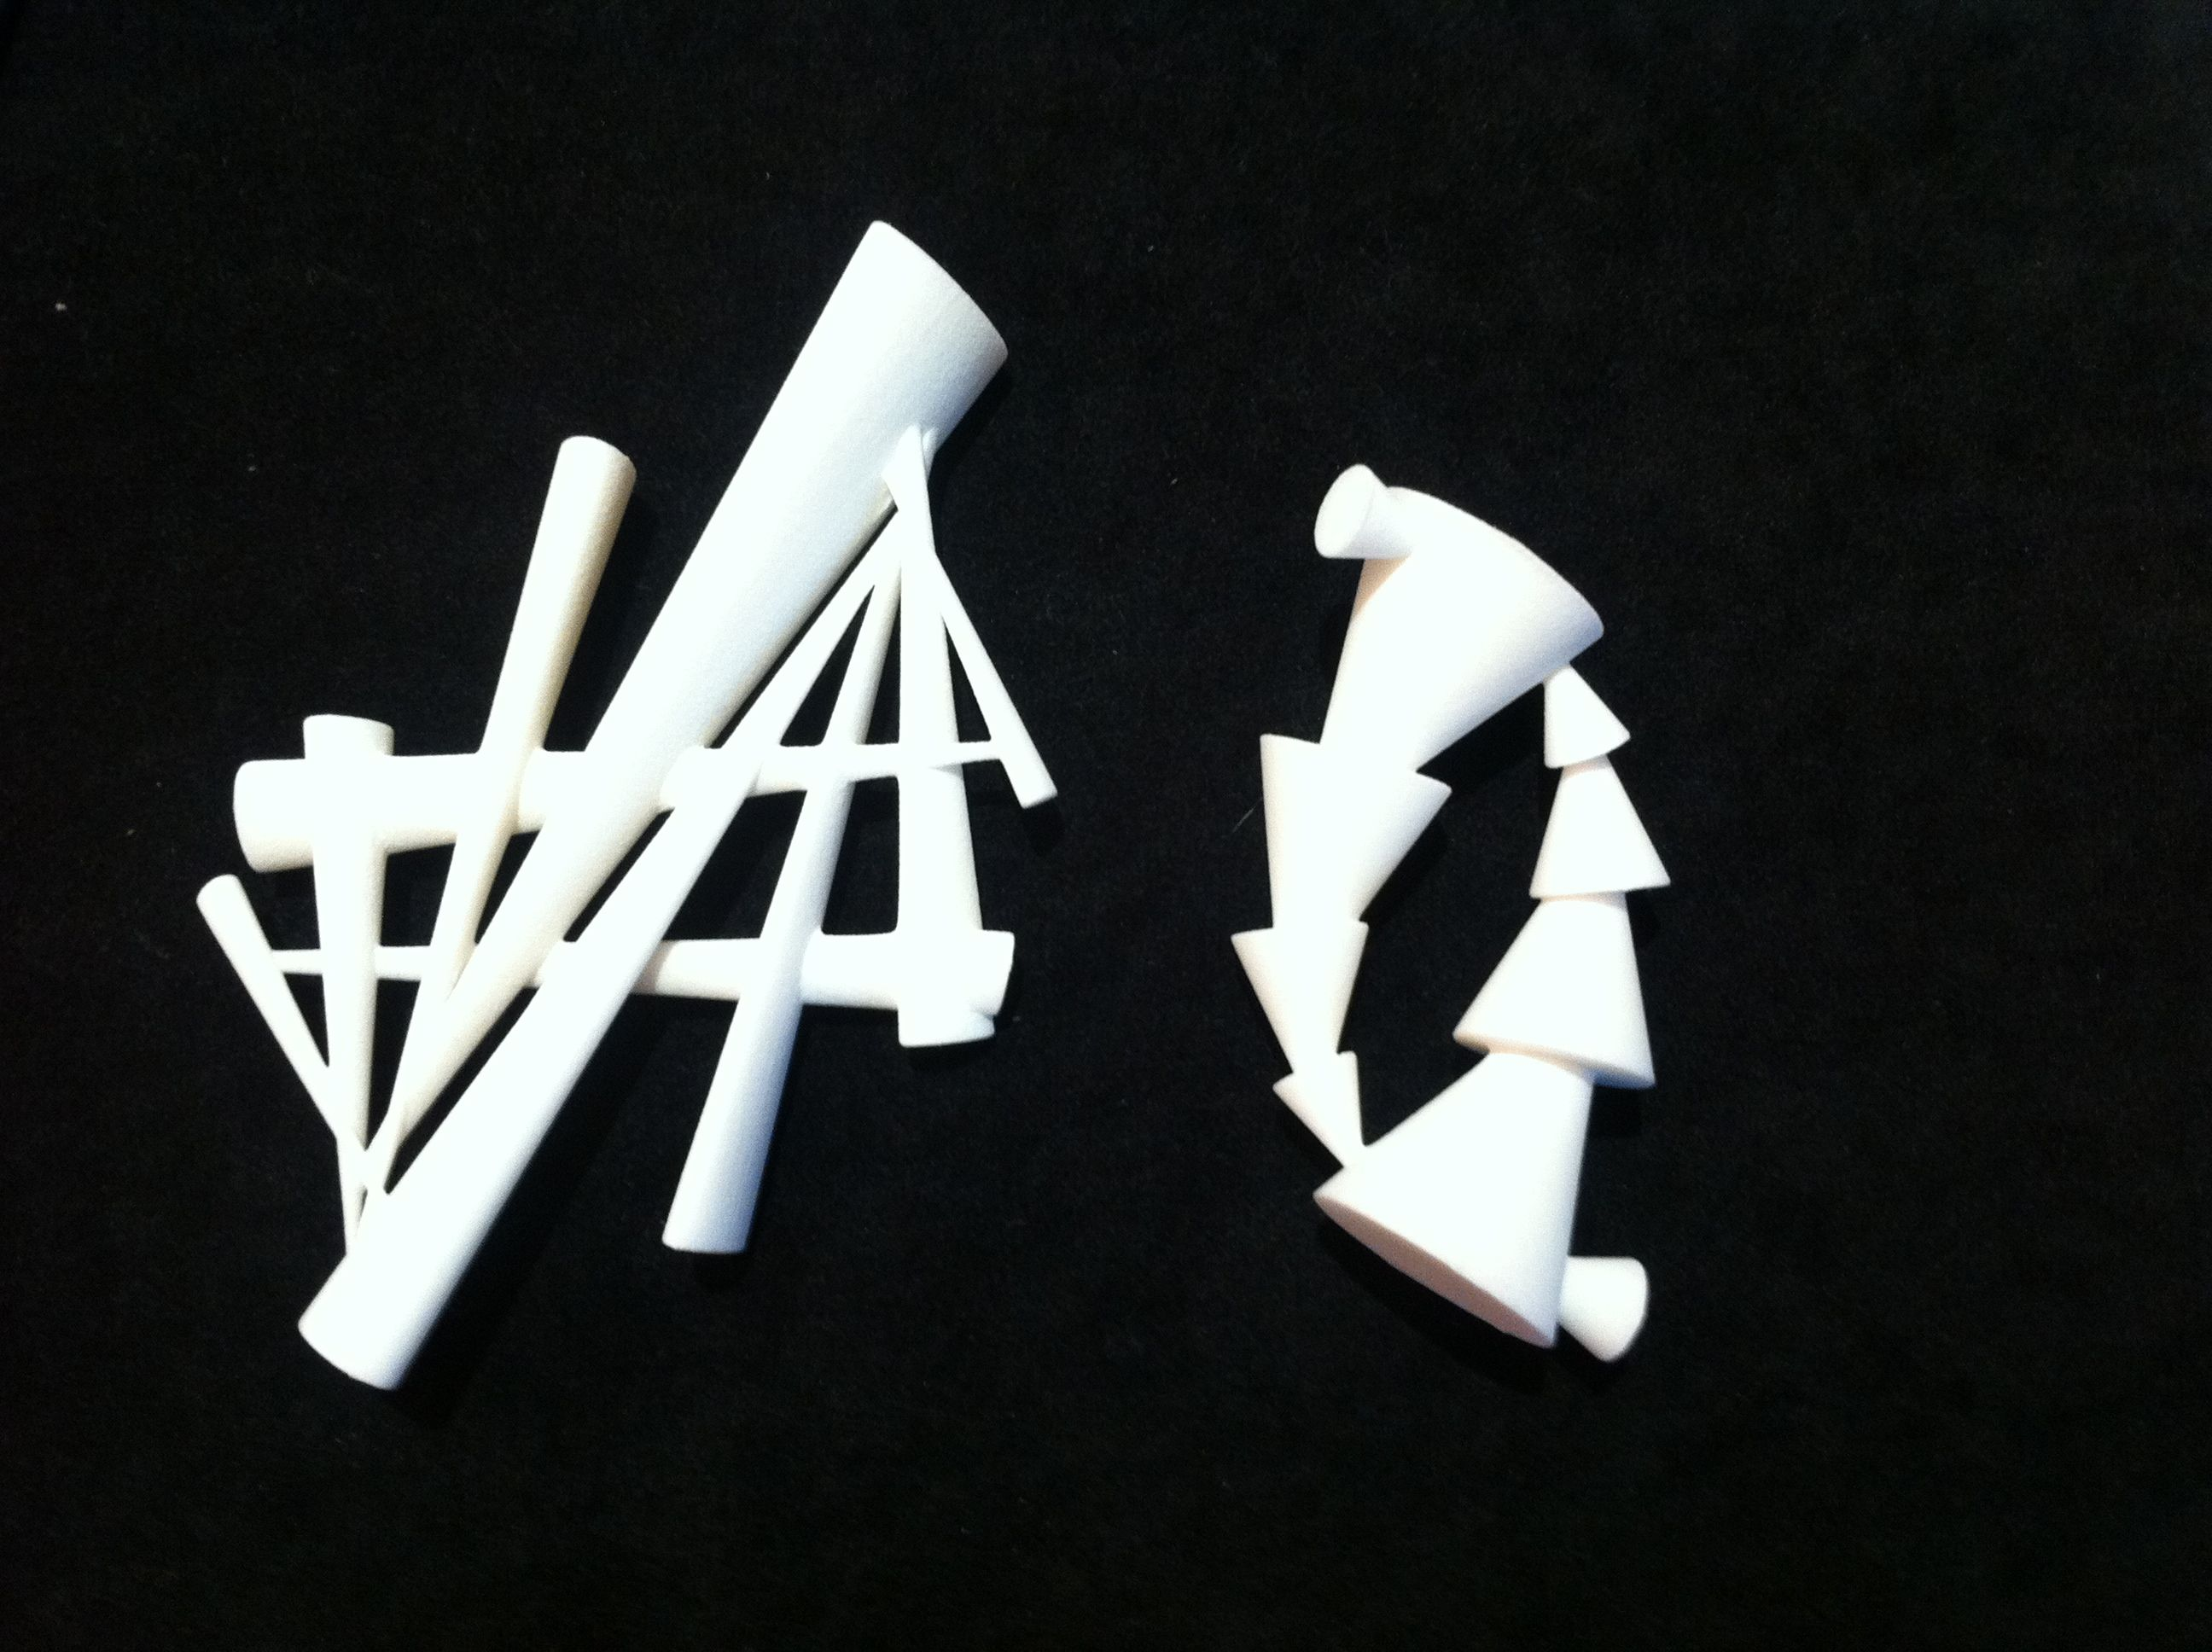 Amazing 3D Printed designs! 3DPrinting 3DConsequences